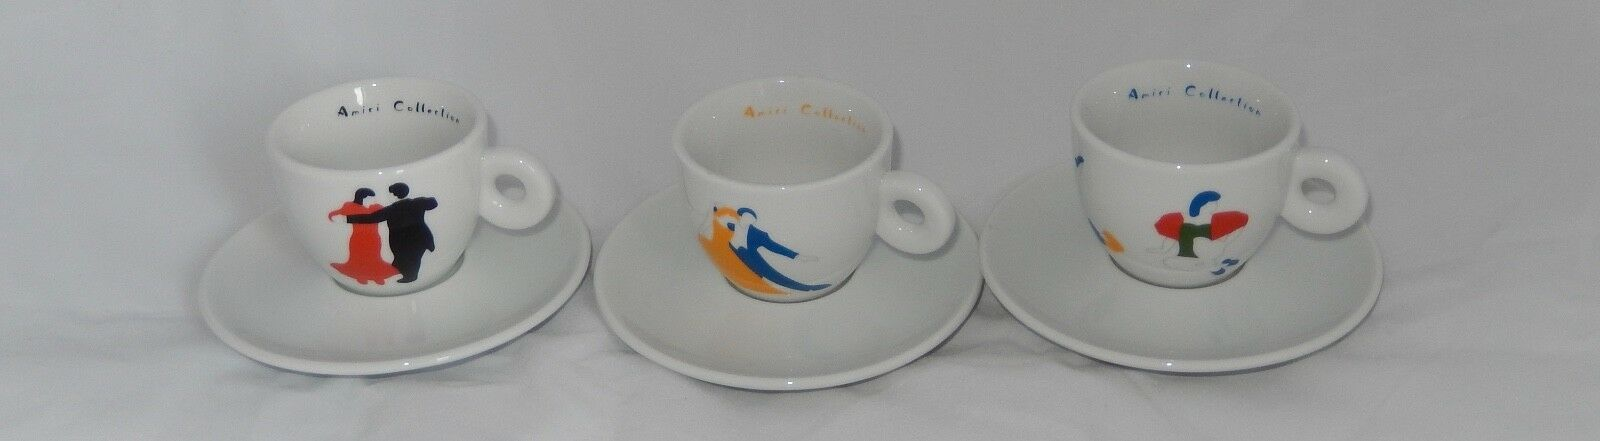 ILLY COLLECTION Amici tasse Illy Tasse Marco LODOLA 1998 3 tasses